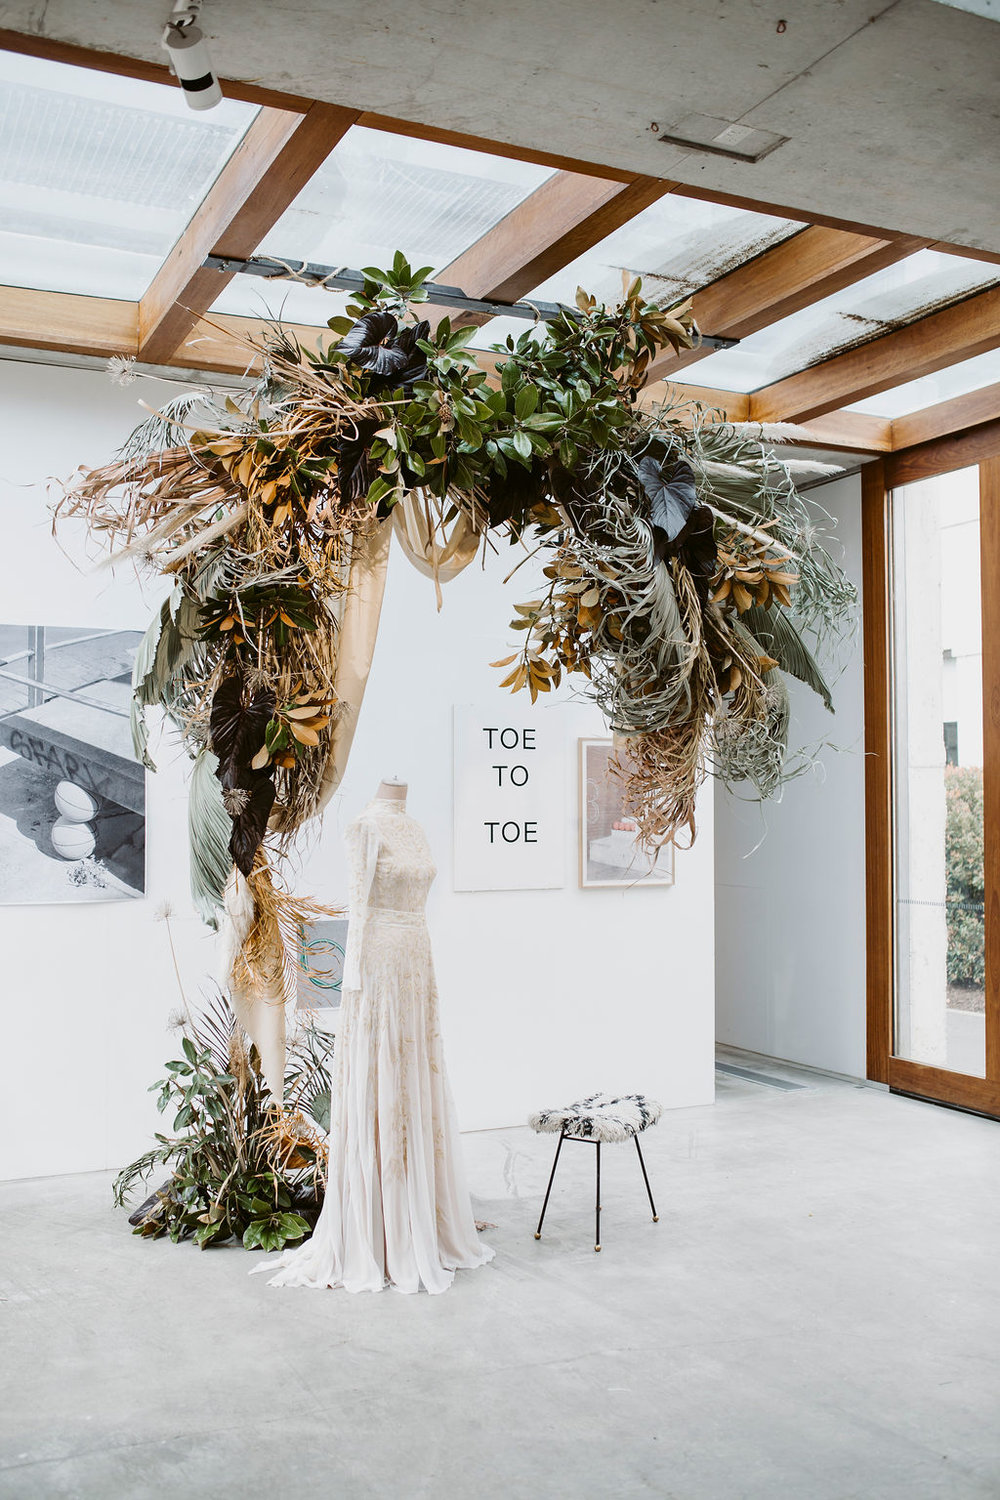 the-mrs-fray-pop-up-nishi-gallery-october-2018-by-anna-turner-weddings-Mrs_Fray-66.jpg